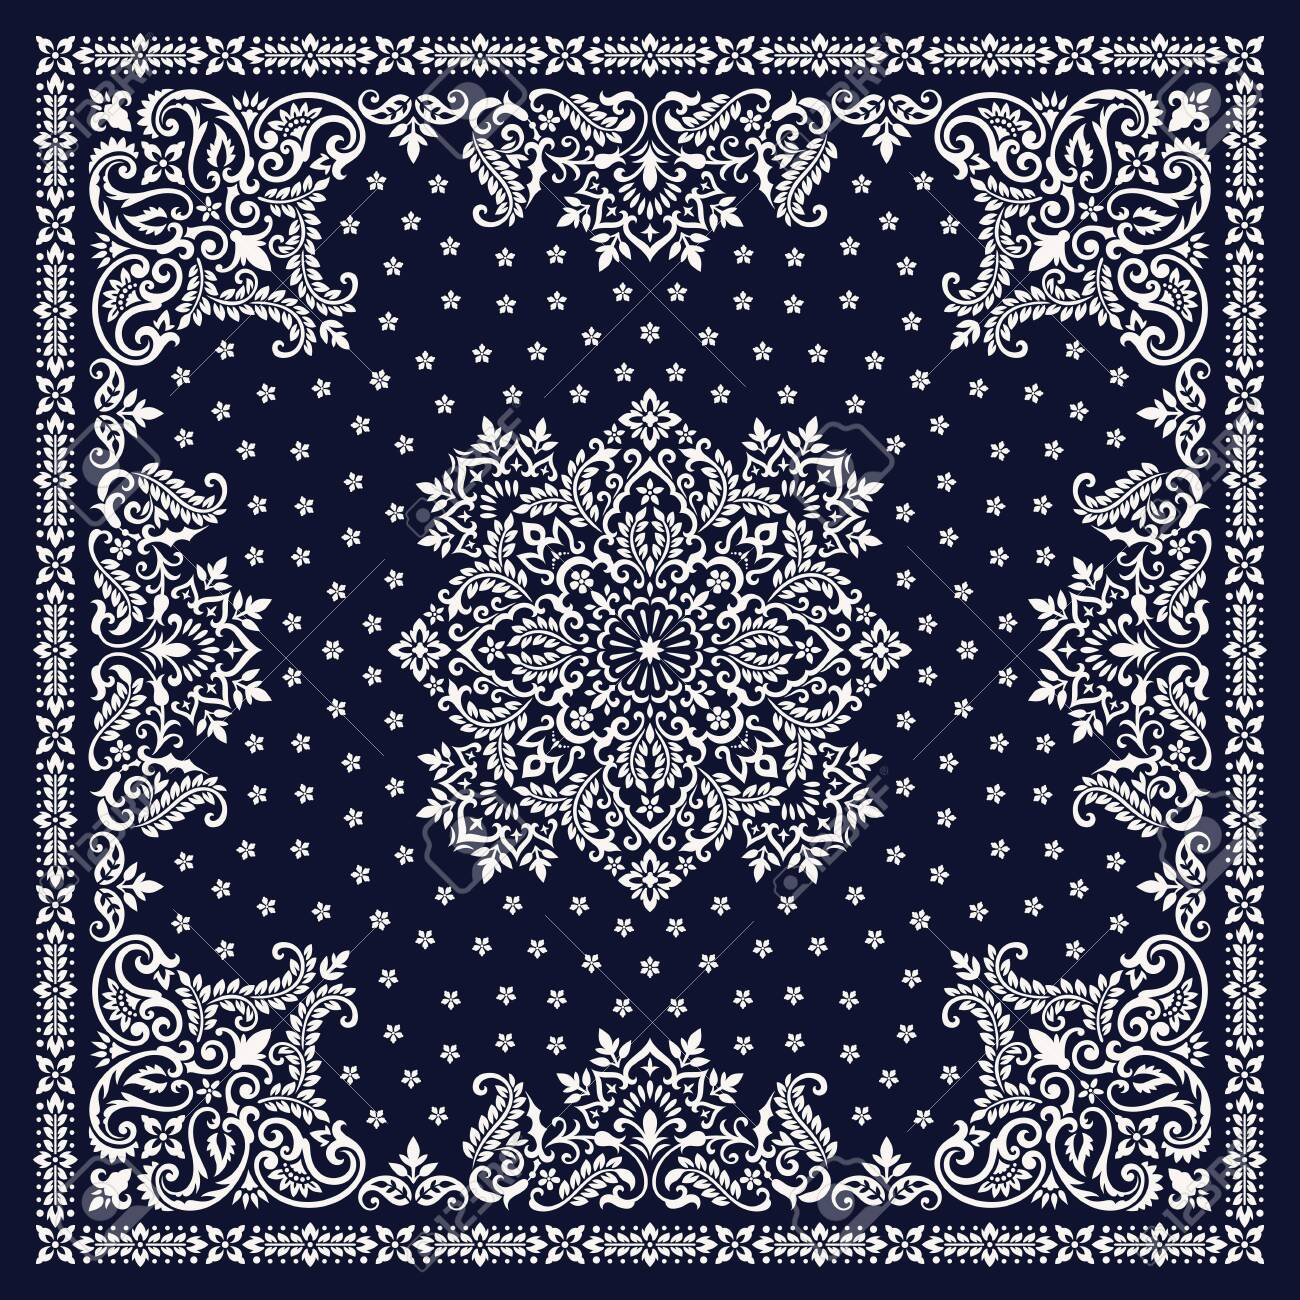 Vector ornament Bandana Print. Traditional ornamental ethnic pattern with paisley and flowers. Silk neck scarf or kerchief square pattern design style - 127985688